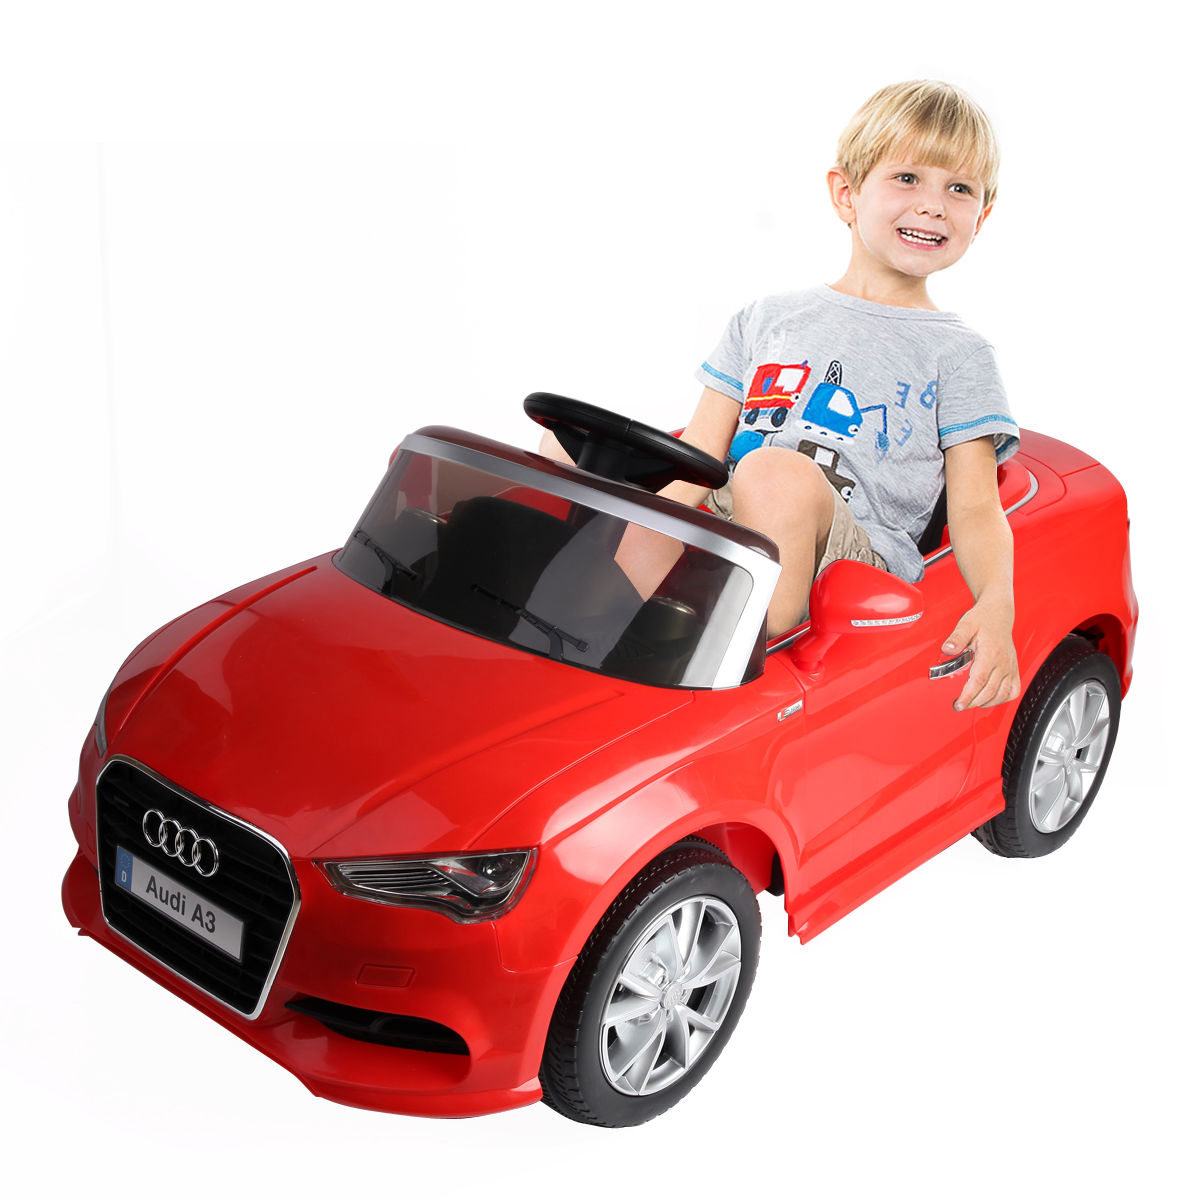 Costway 12V Audi A3 Licensed RC Kids Ride On Car Electric Remote Control LED Light Music by Costway